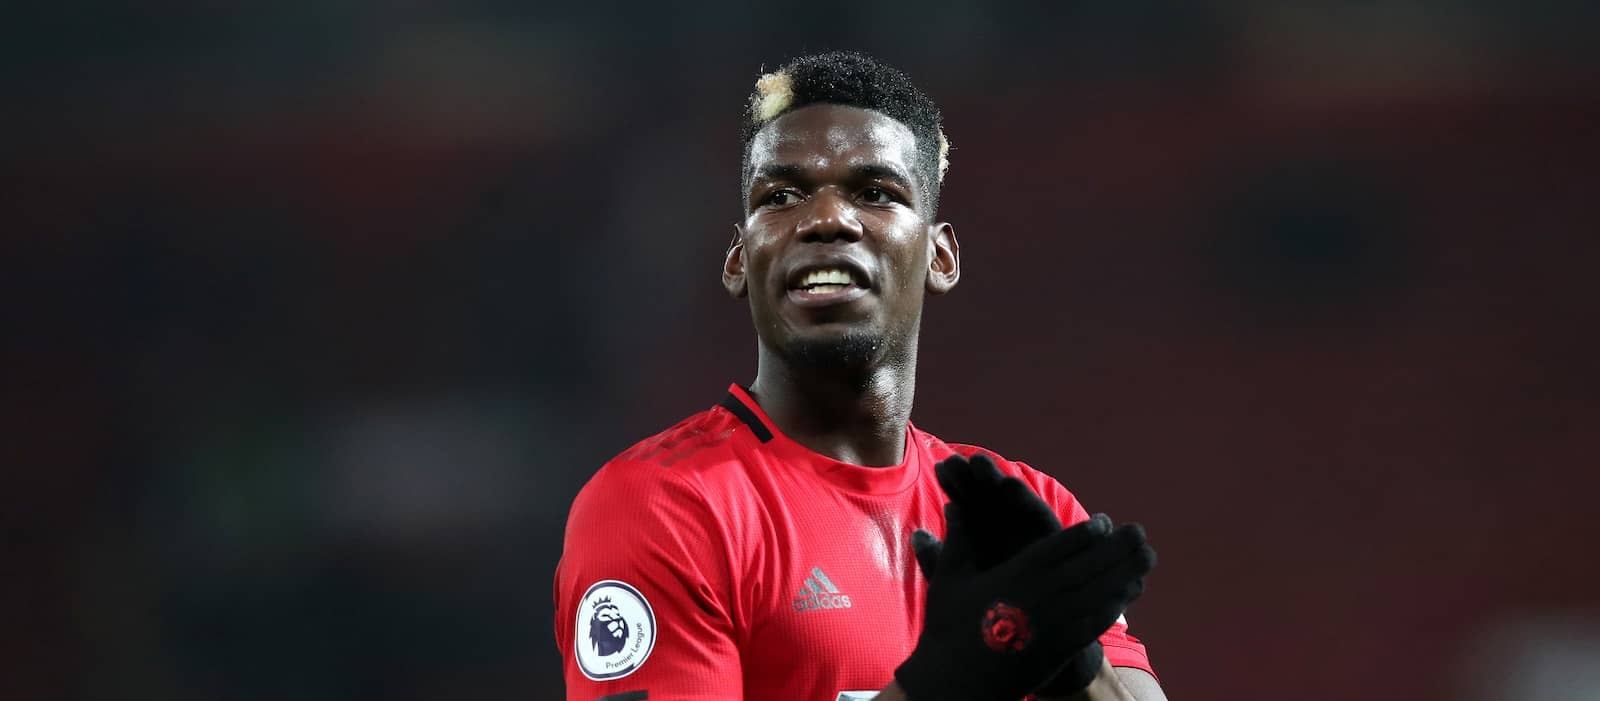 Paul Pogba still a part of Manchester United's plans